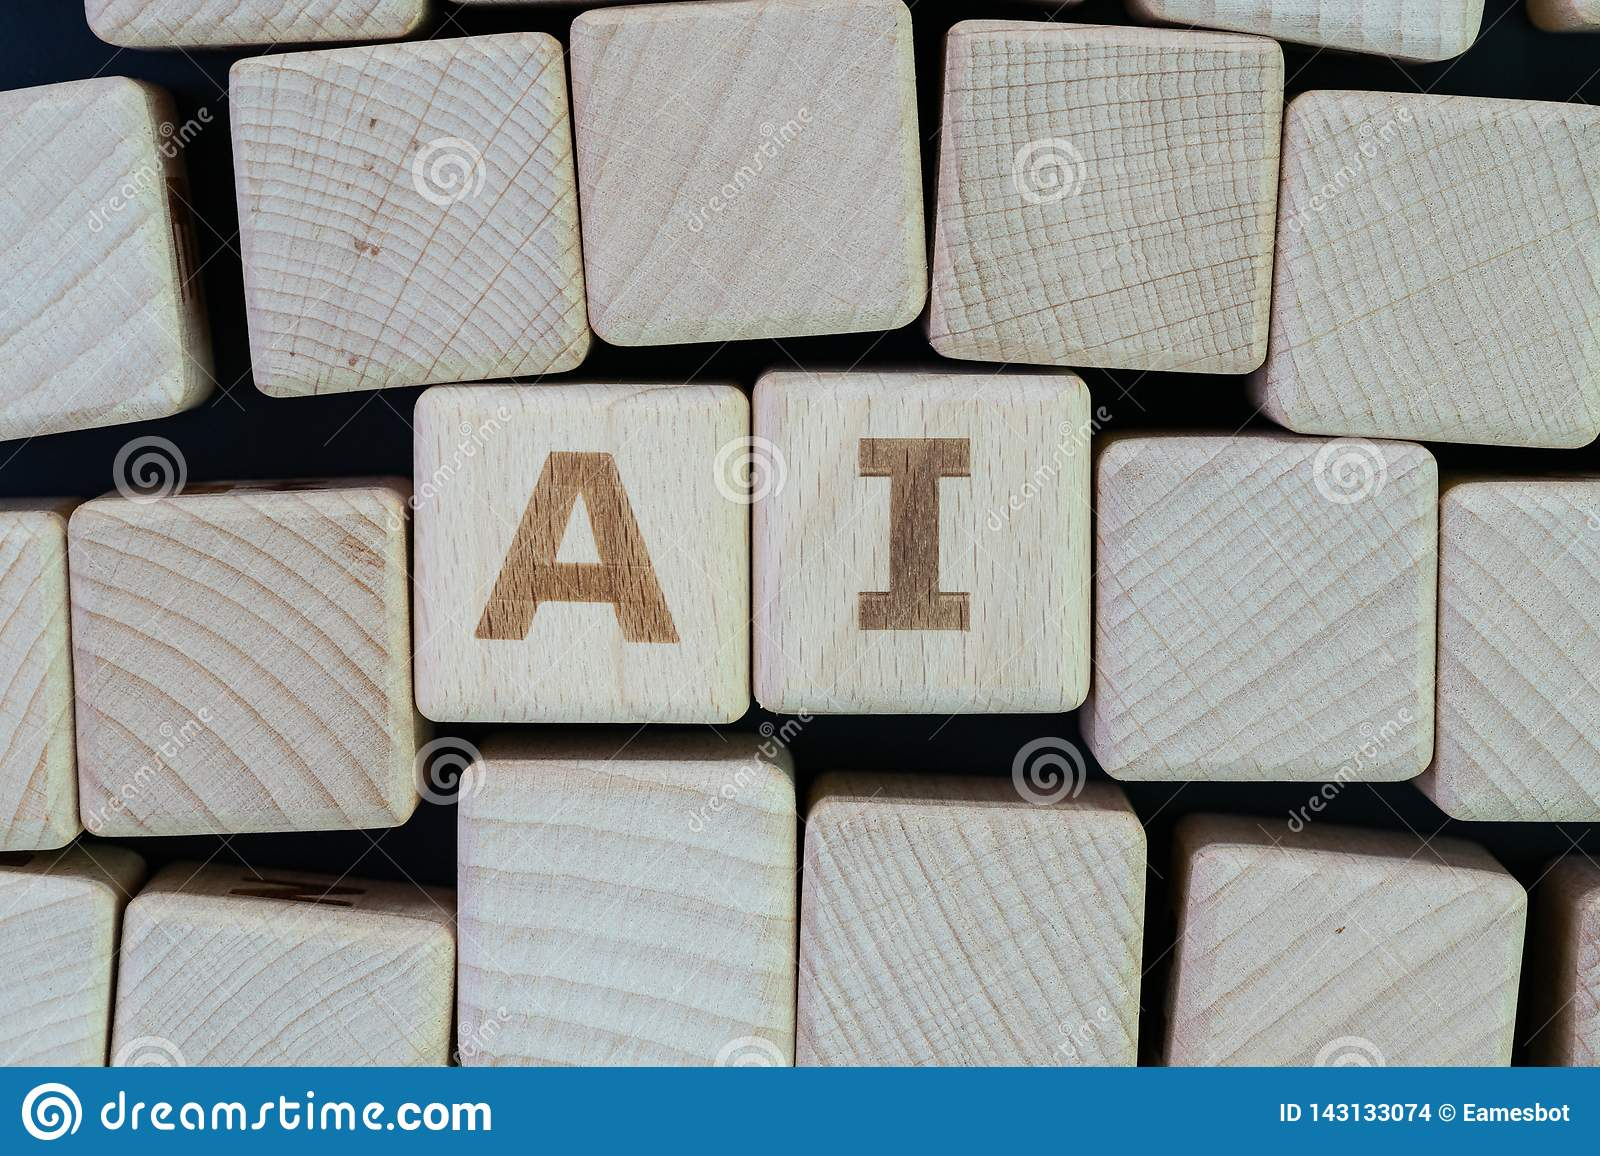 AI, Artificial Intelligence or machine learning in future world concept, straggle cube wooden blocks with some combine the word AI